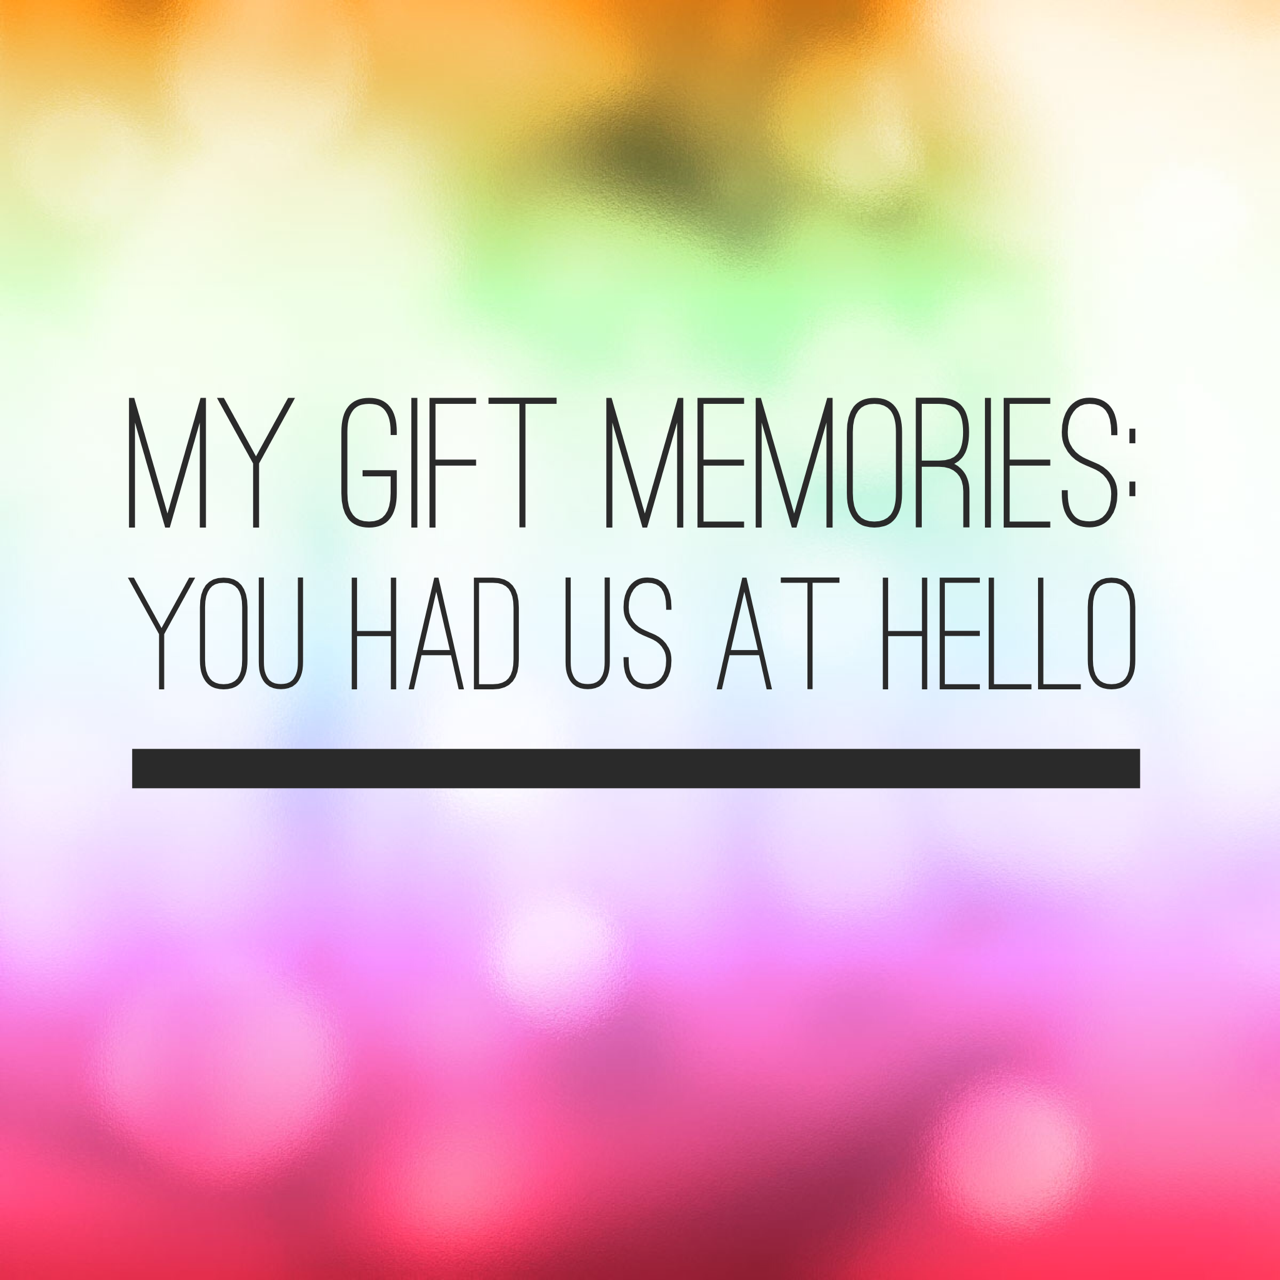 My gift memories – You had us at hello